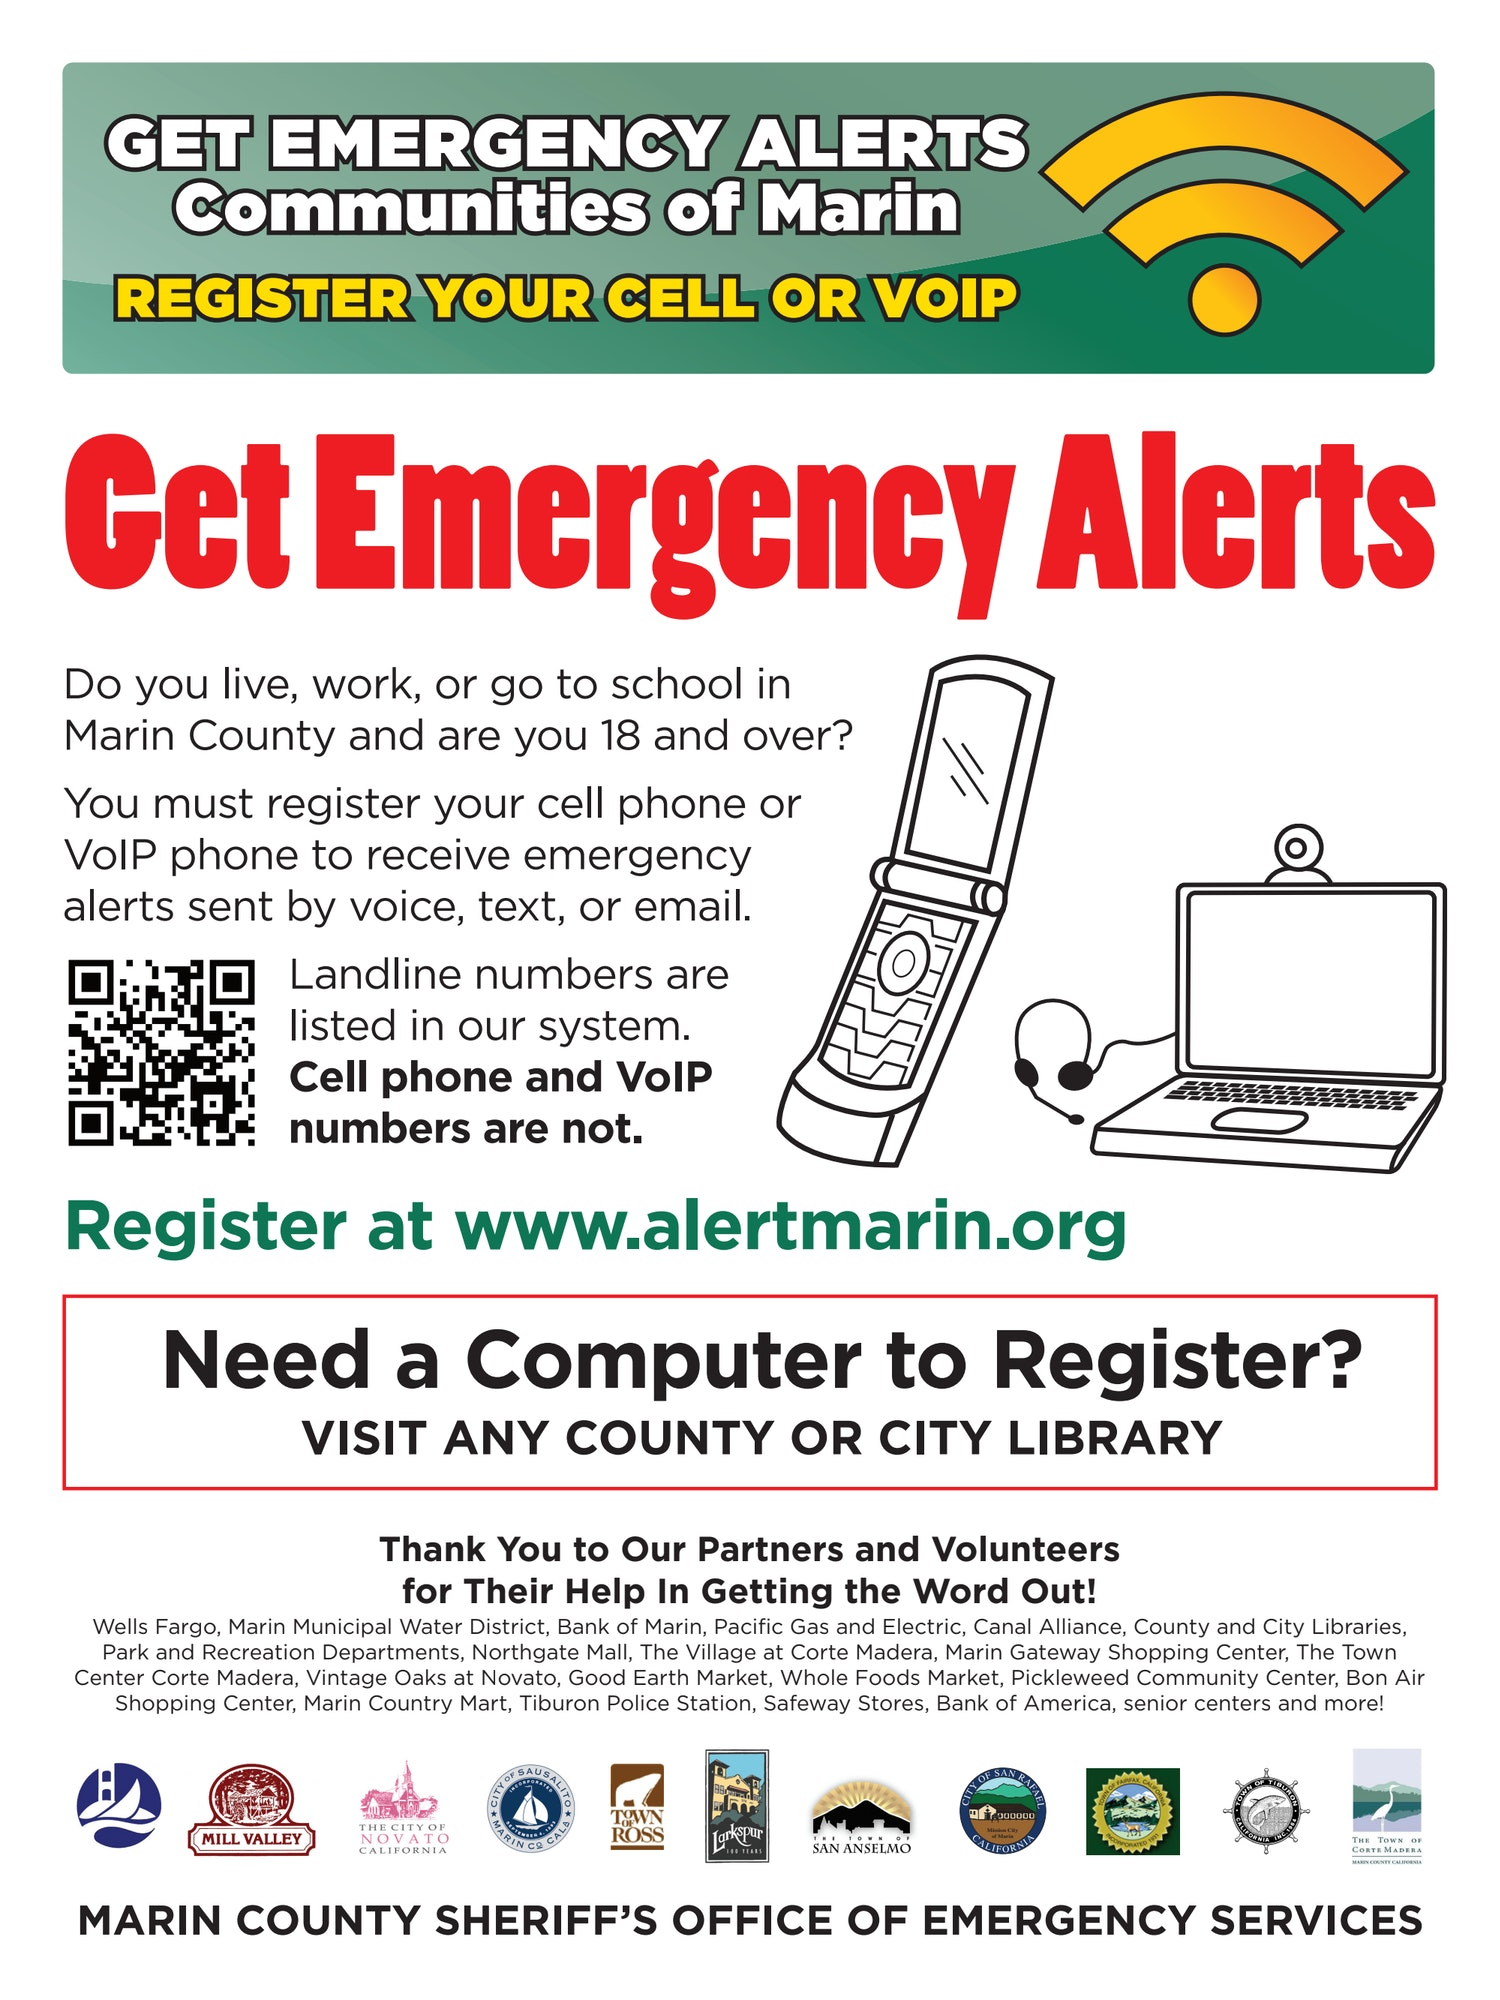 Get Emergency Alerts for Communities in Marin Poster